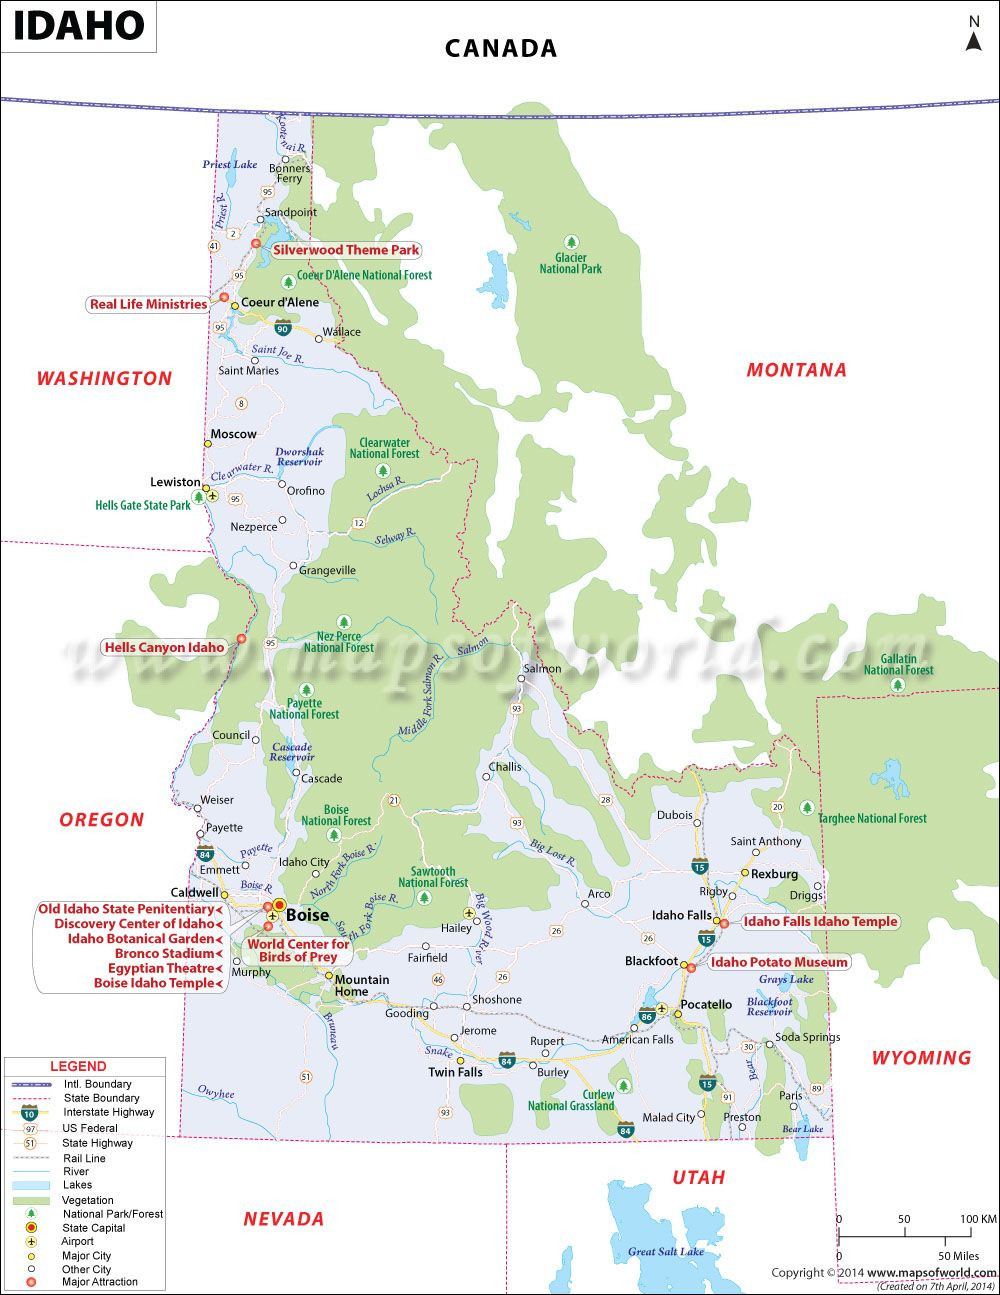 Idaho map showing the major travel attractions including cities points of interest and more